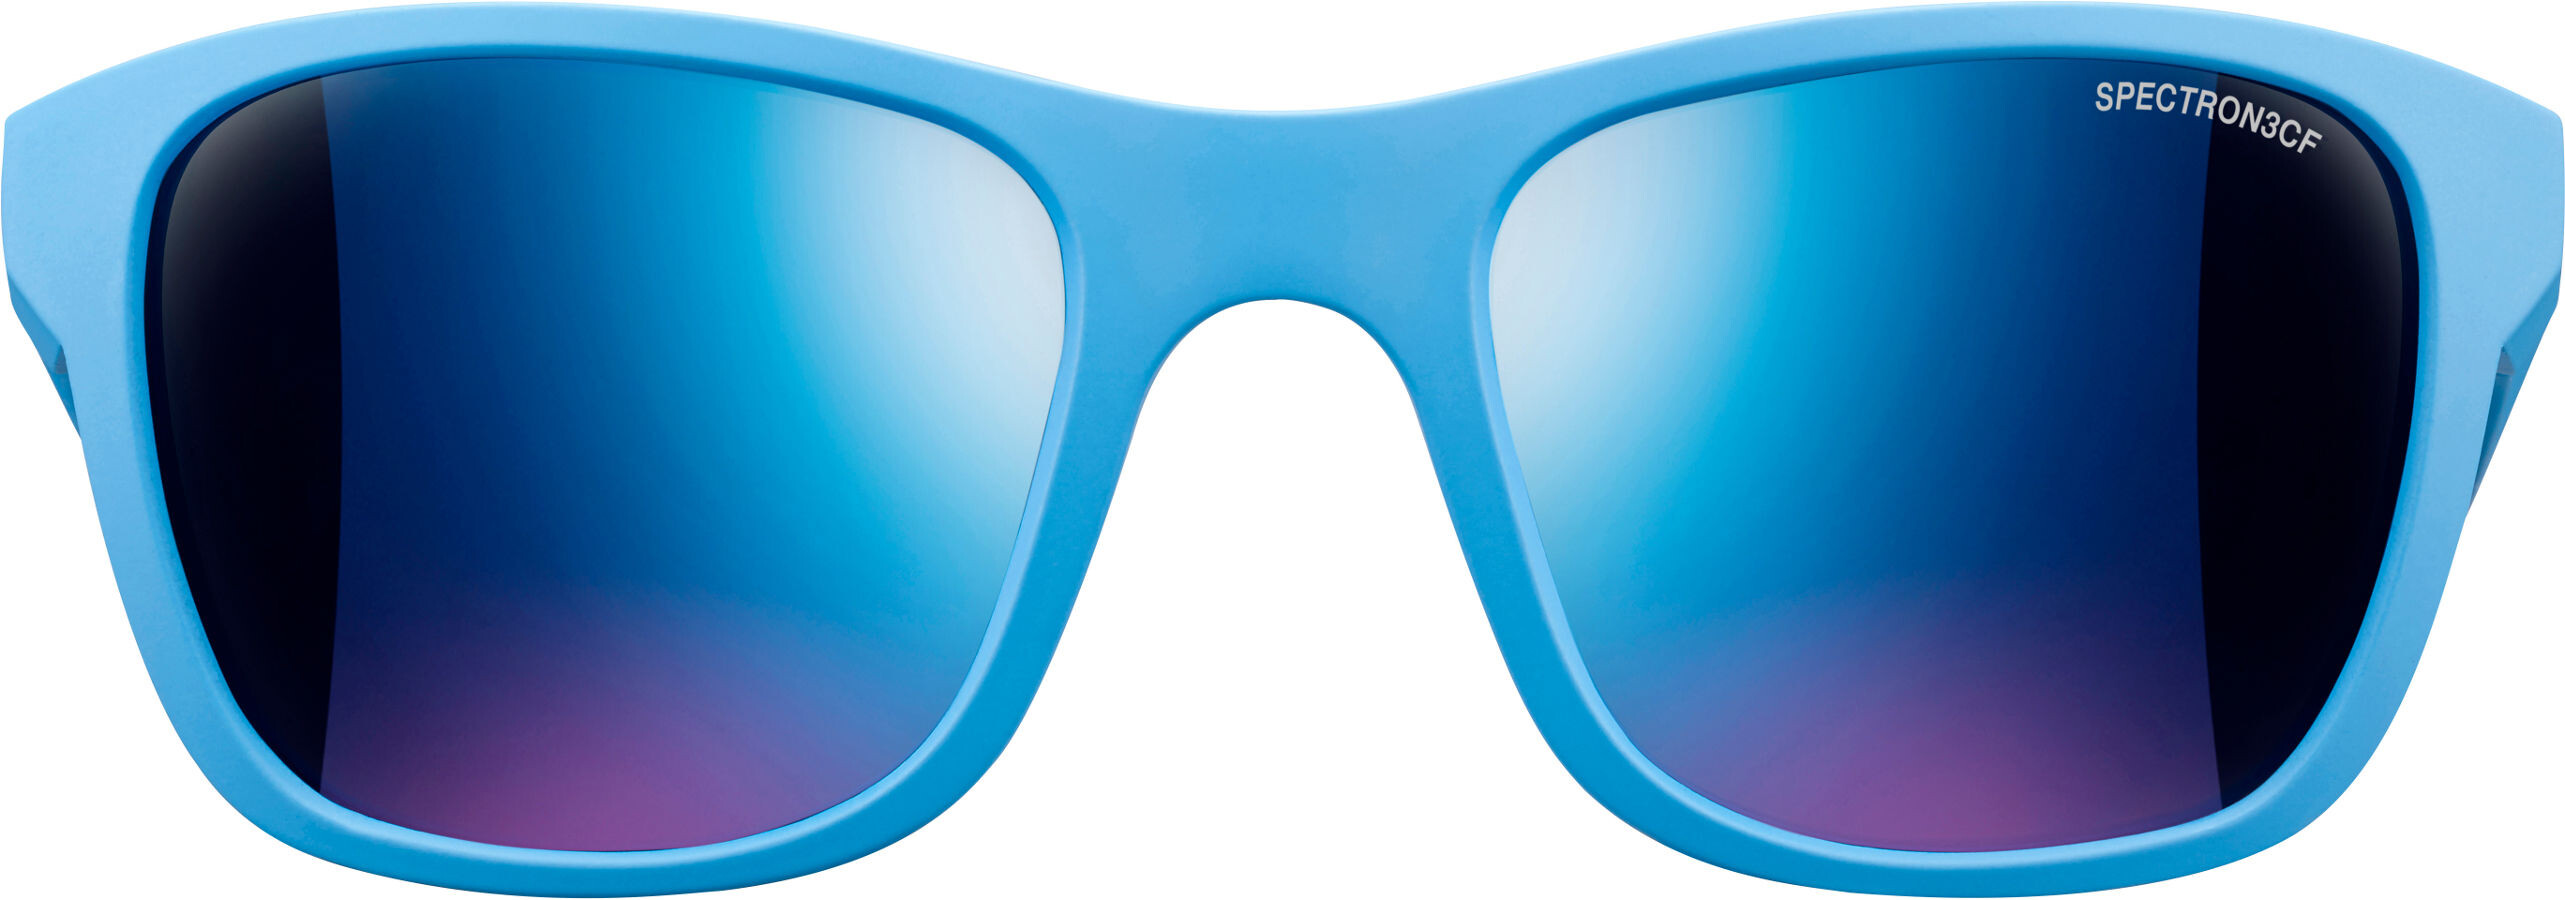 72339b634d3448 Julbo Reach L Spectron 3CF Sunglasses Junior 10-15Y Cyan Blue-Multilayer  Blue